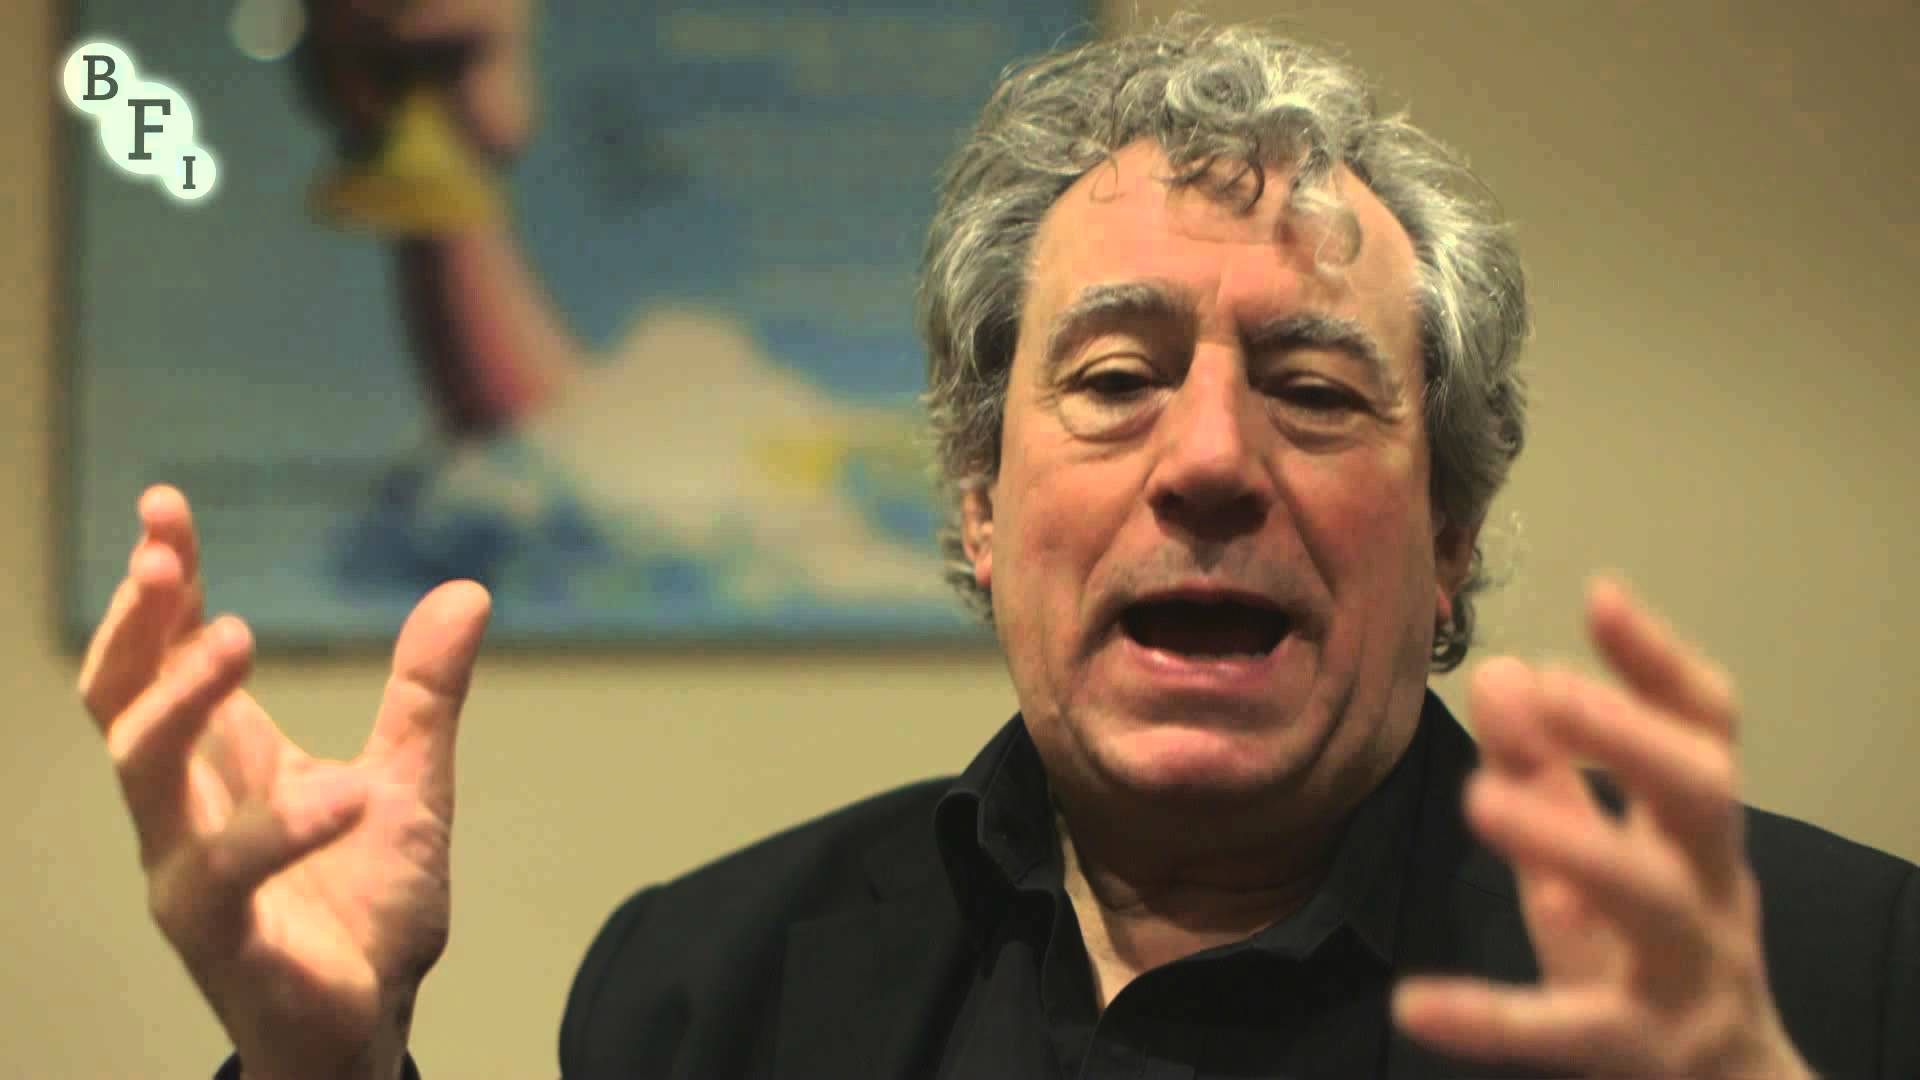 Monty Python star Terry Jones was recently diagnosed with dementia. The 74-year-old is suffering from primary progressive aphasia, which affects his ability to communicate.